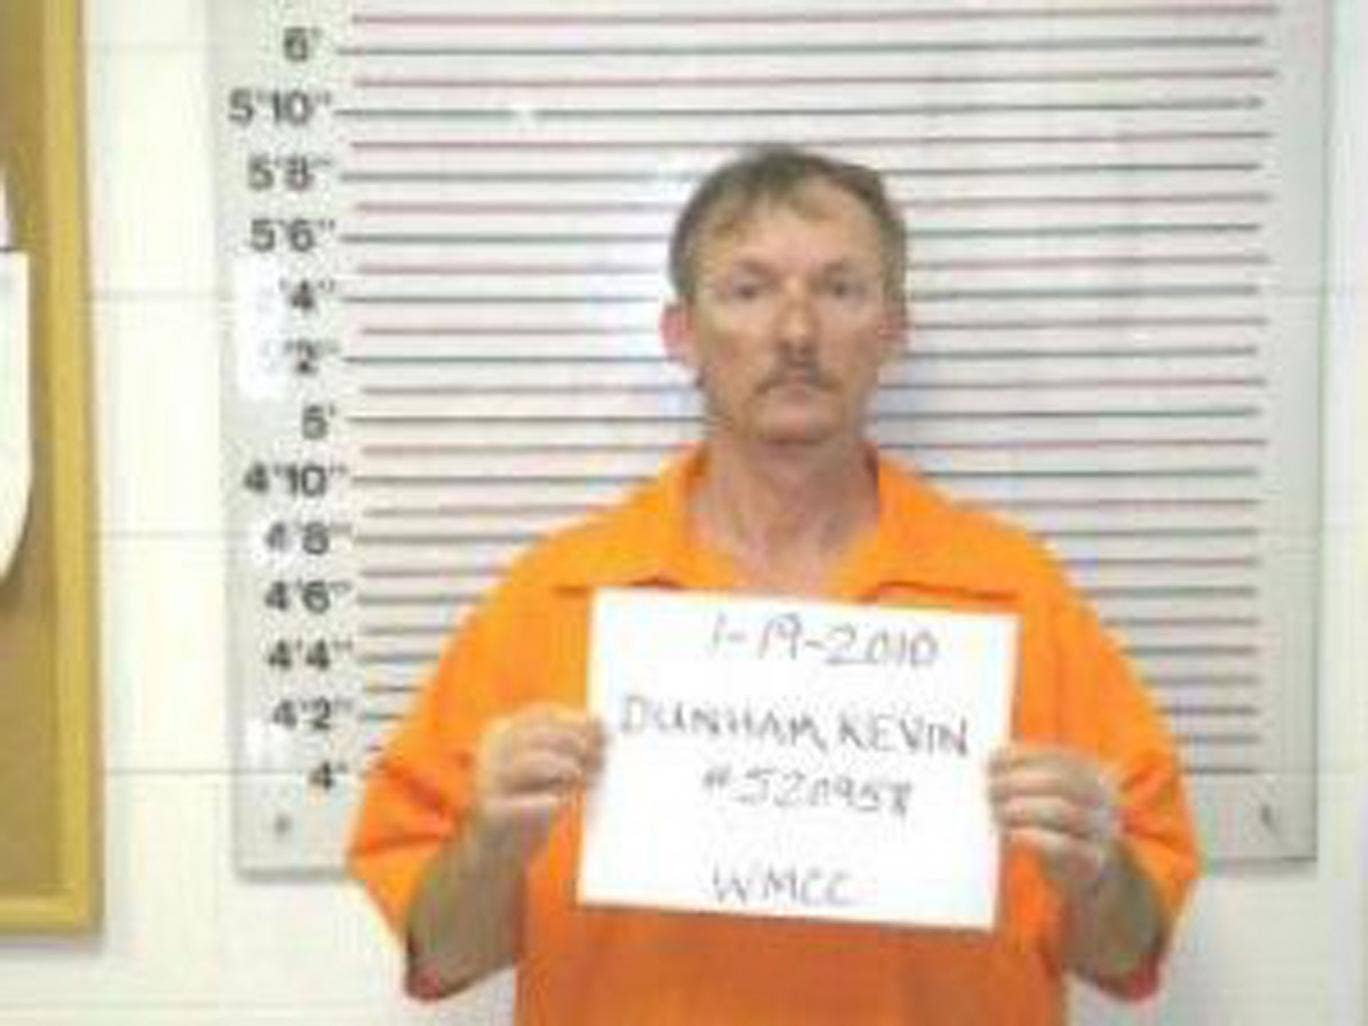 Kevin Dunham submitted fraudulent claims from prison